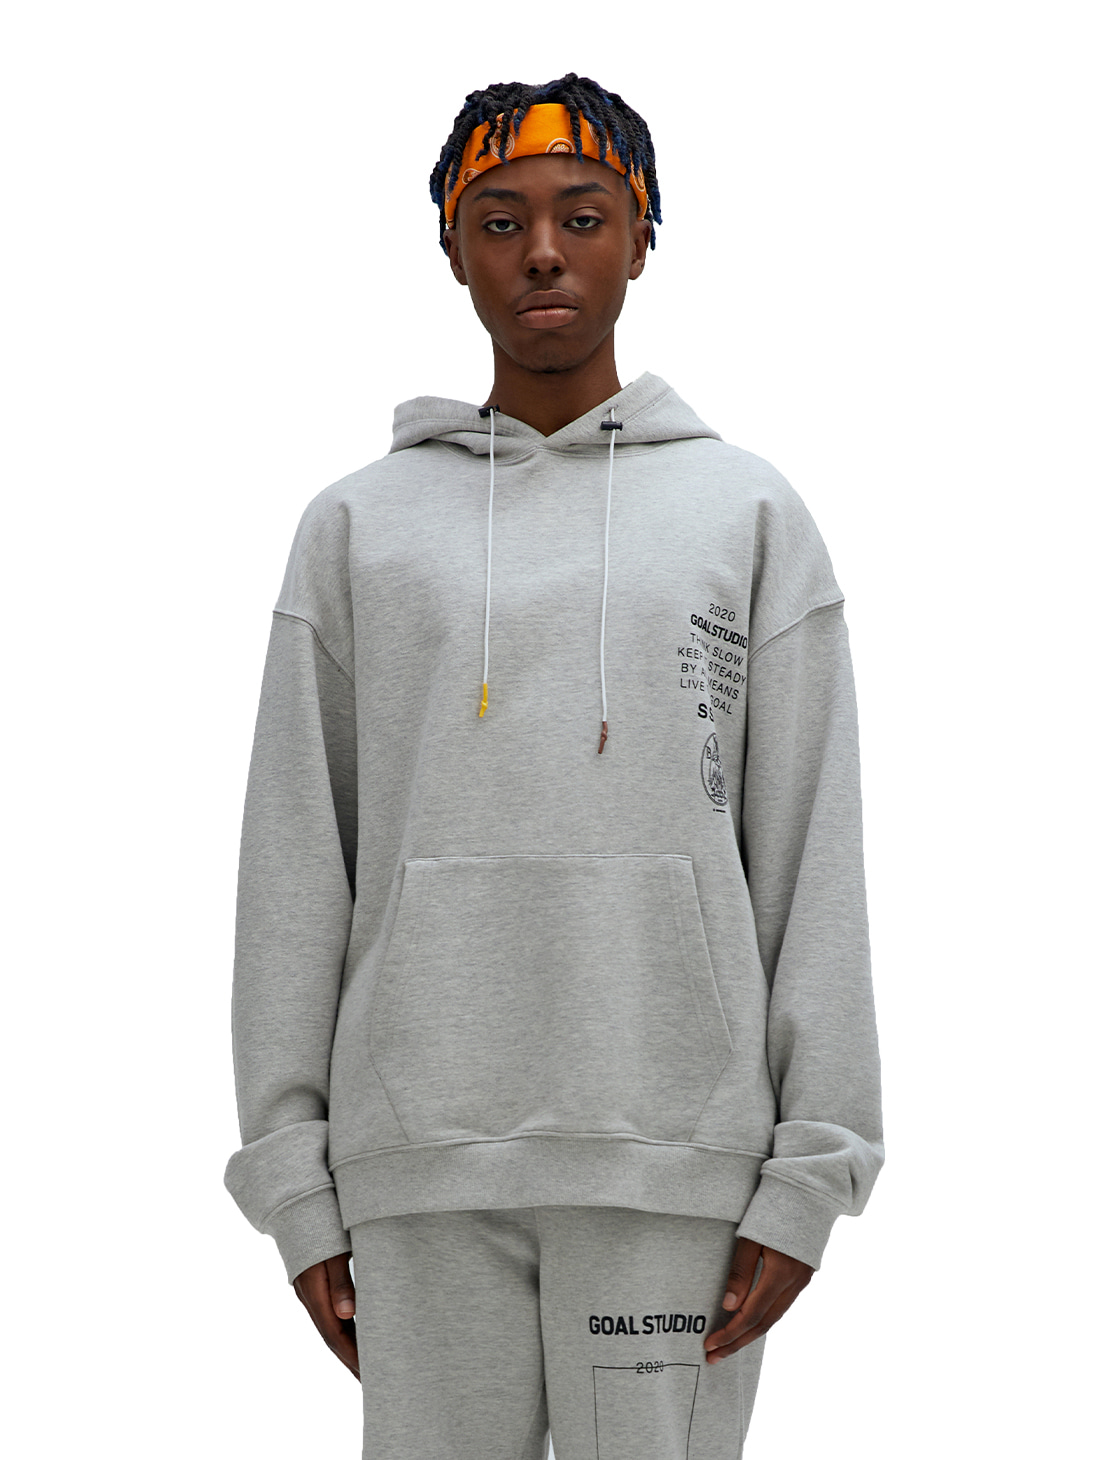 GOALSTUDIO SSFC JERSEY HOODED SWEATSHIRT - GREY